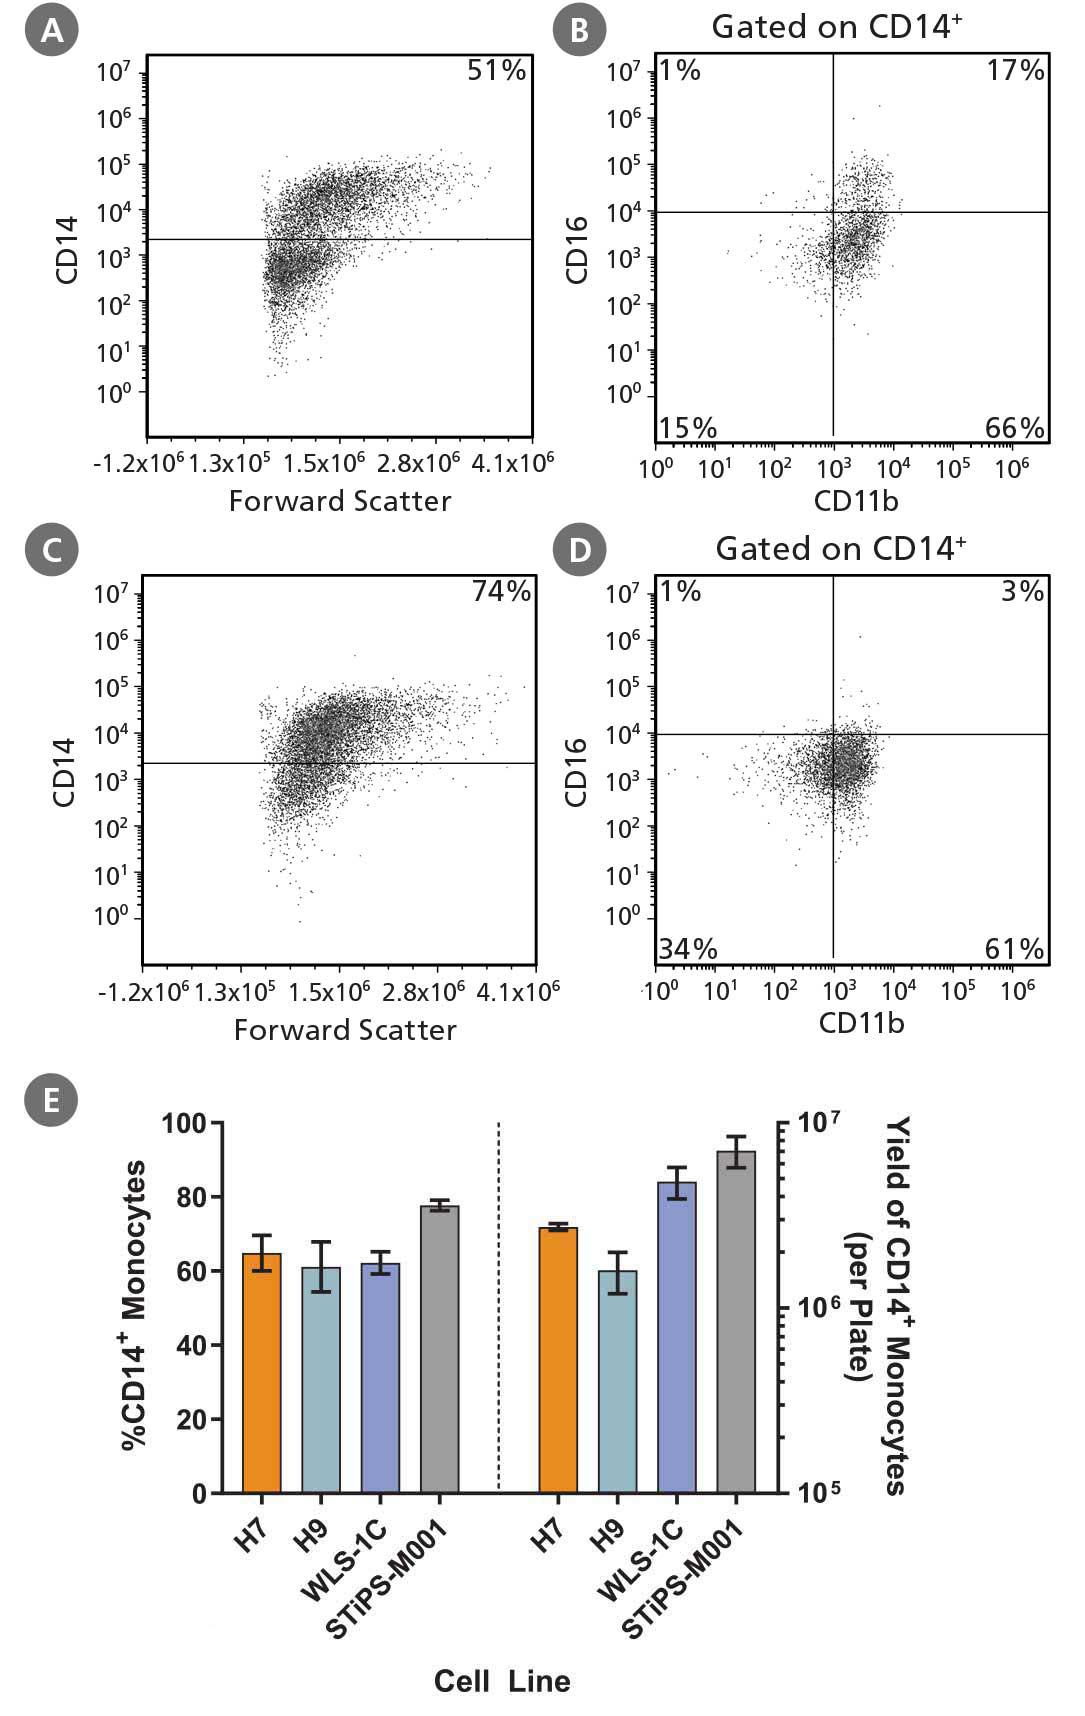 hPSC-Derived CD14+ Monocyte Characterization, Frequency and Yield